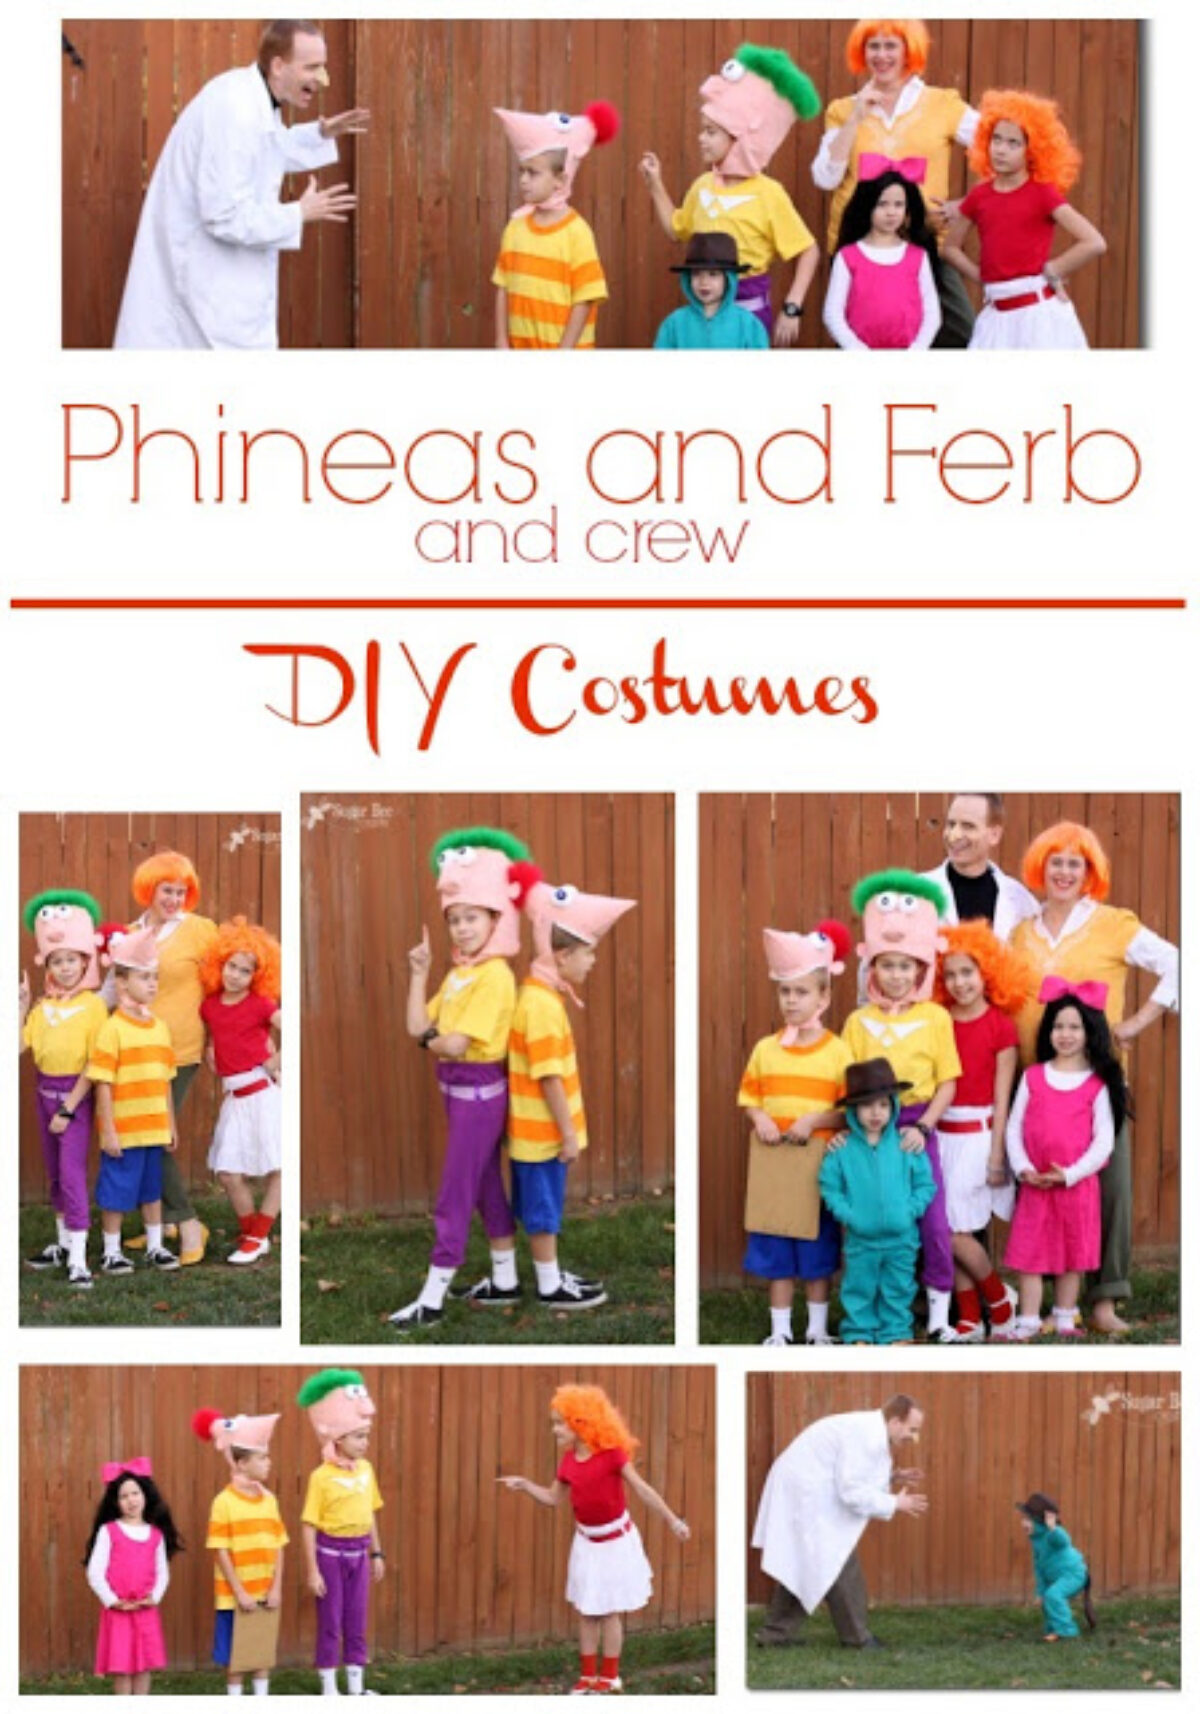 Ferb Images halloween family costume crafts | diy phineas and ferb costumes